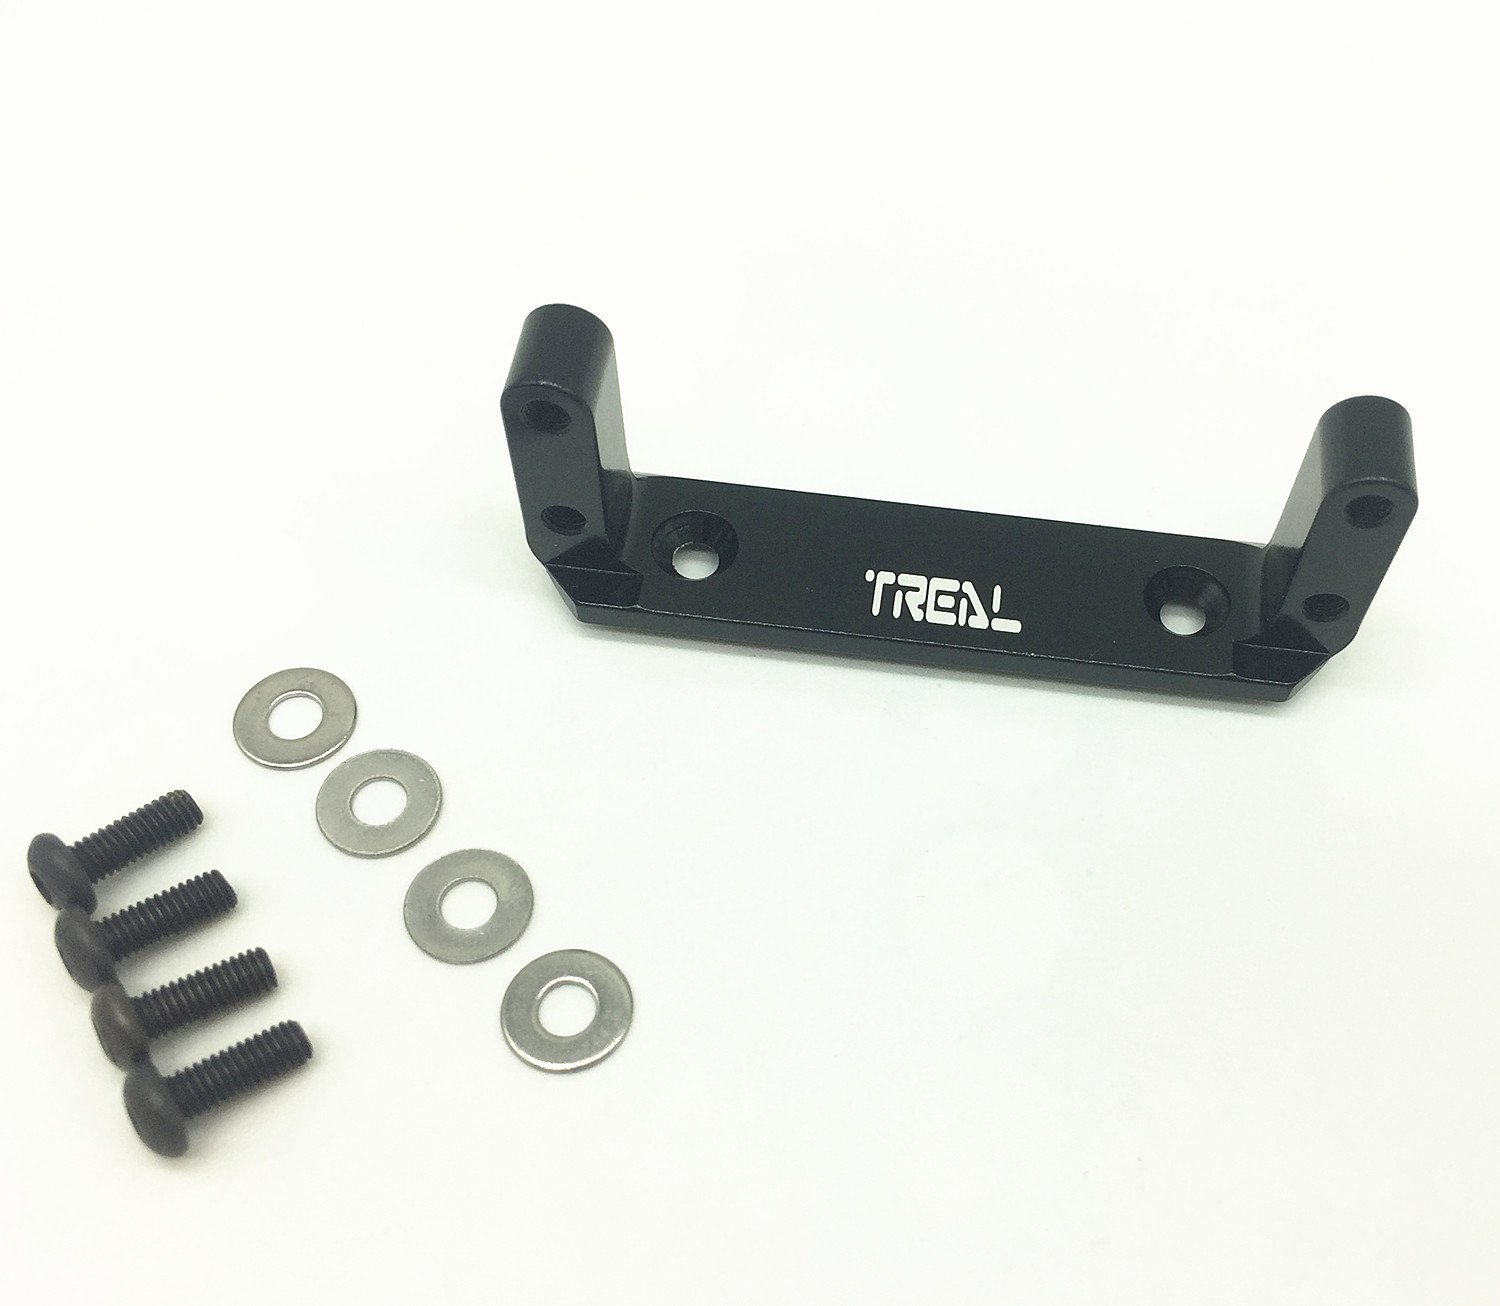 Treal Alloy Axle Servo Mount for Axial Wraith RC Model Hop-ups - Black